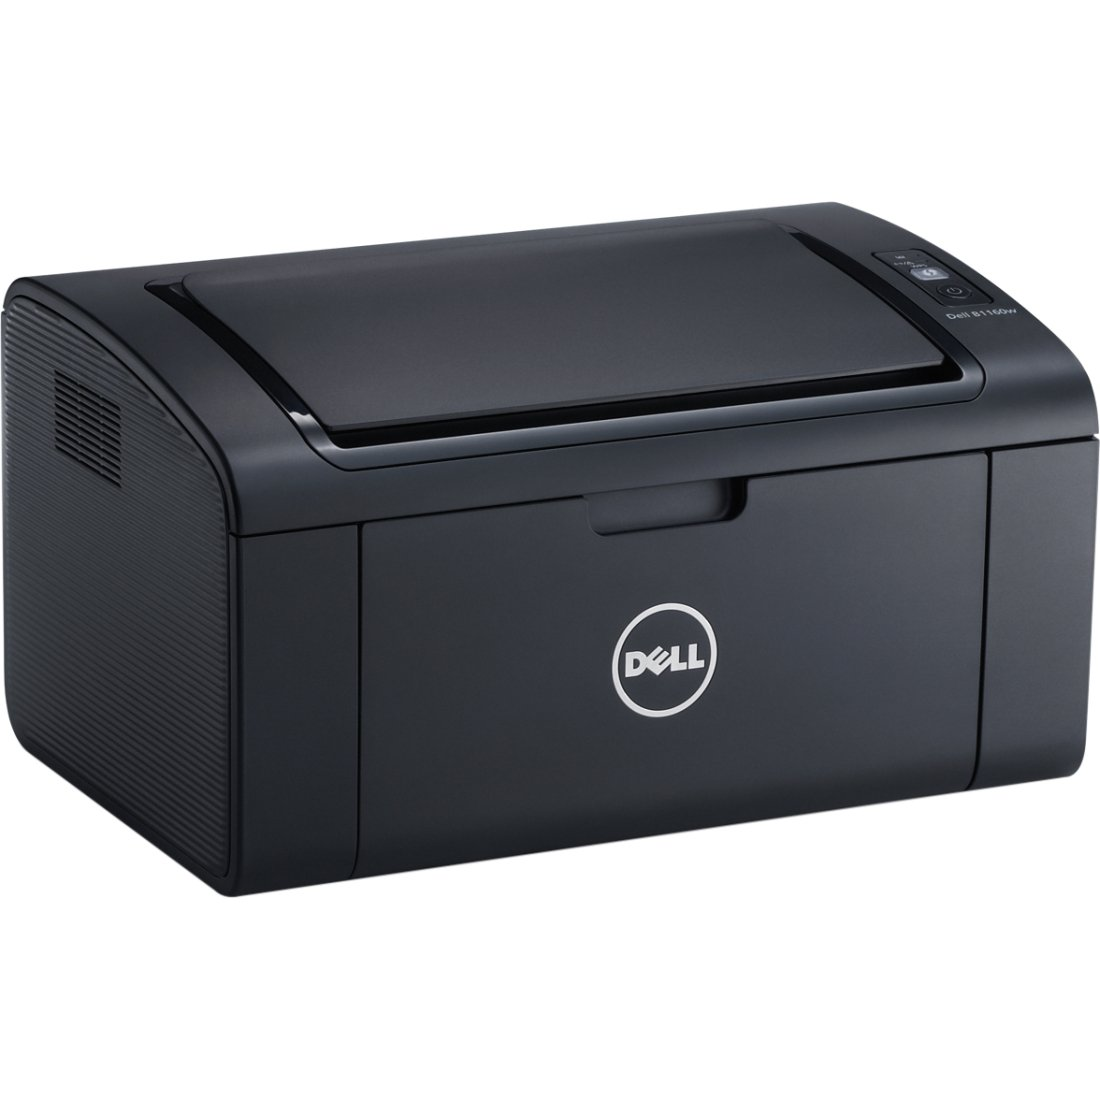 Dell Computer B1160w Wireless Monochrome Printer Dell Marketing USA LP